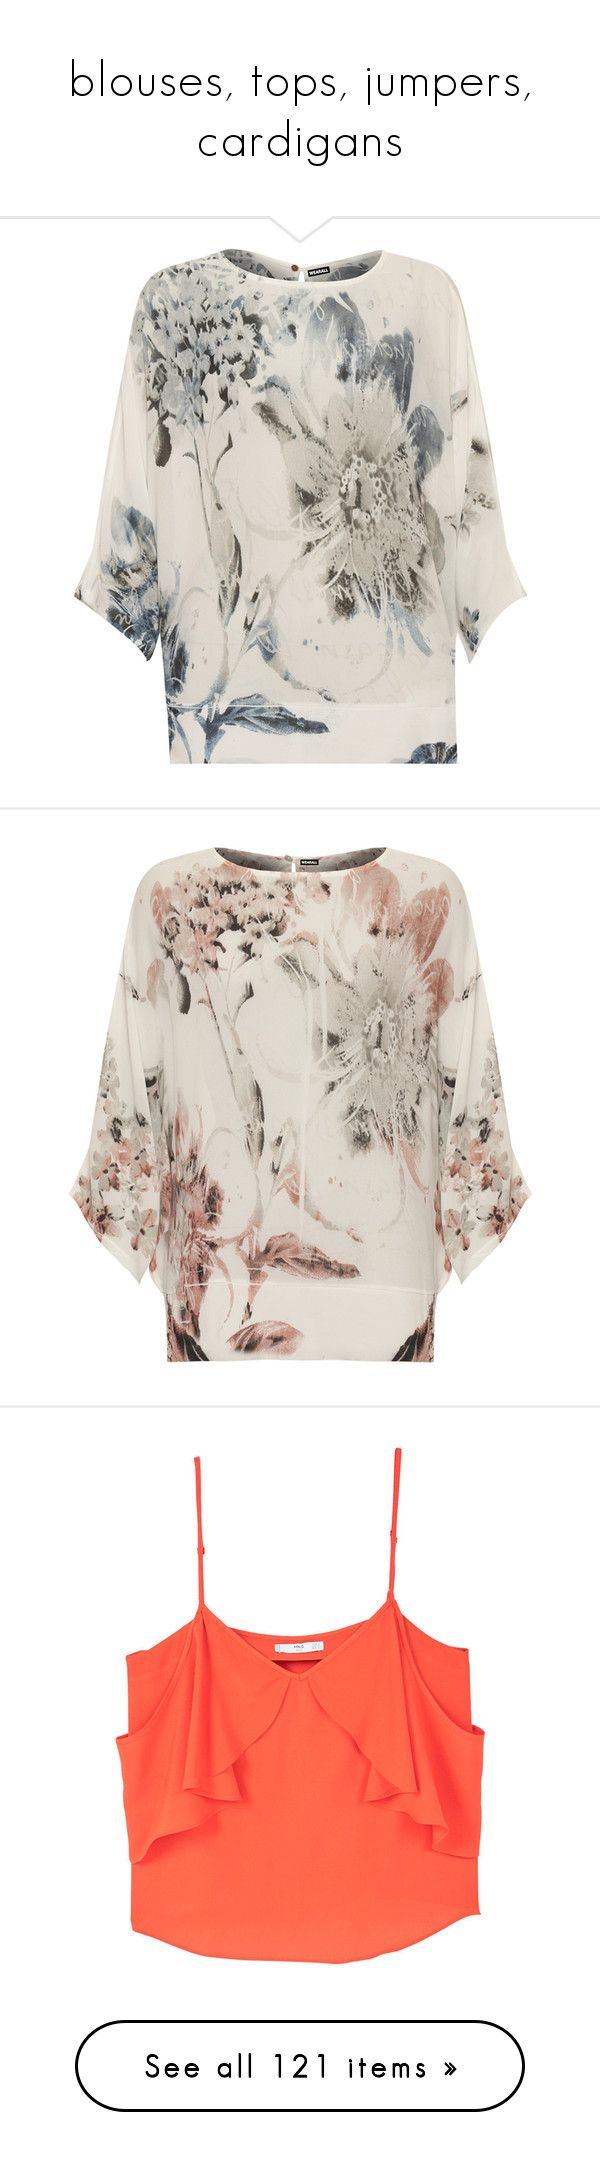 """""""blouses, tops, jumpers, cardigans"""" by julidrops ❤ liked on Polyvore featuring tops, grey, see through tops, sheer long sleeve top, chiffon tops, batwing tops, long sleeve batwing top, brown, sheer floral top and pink chiffon top"""